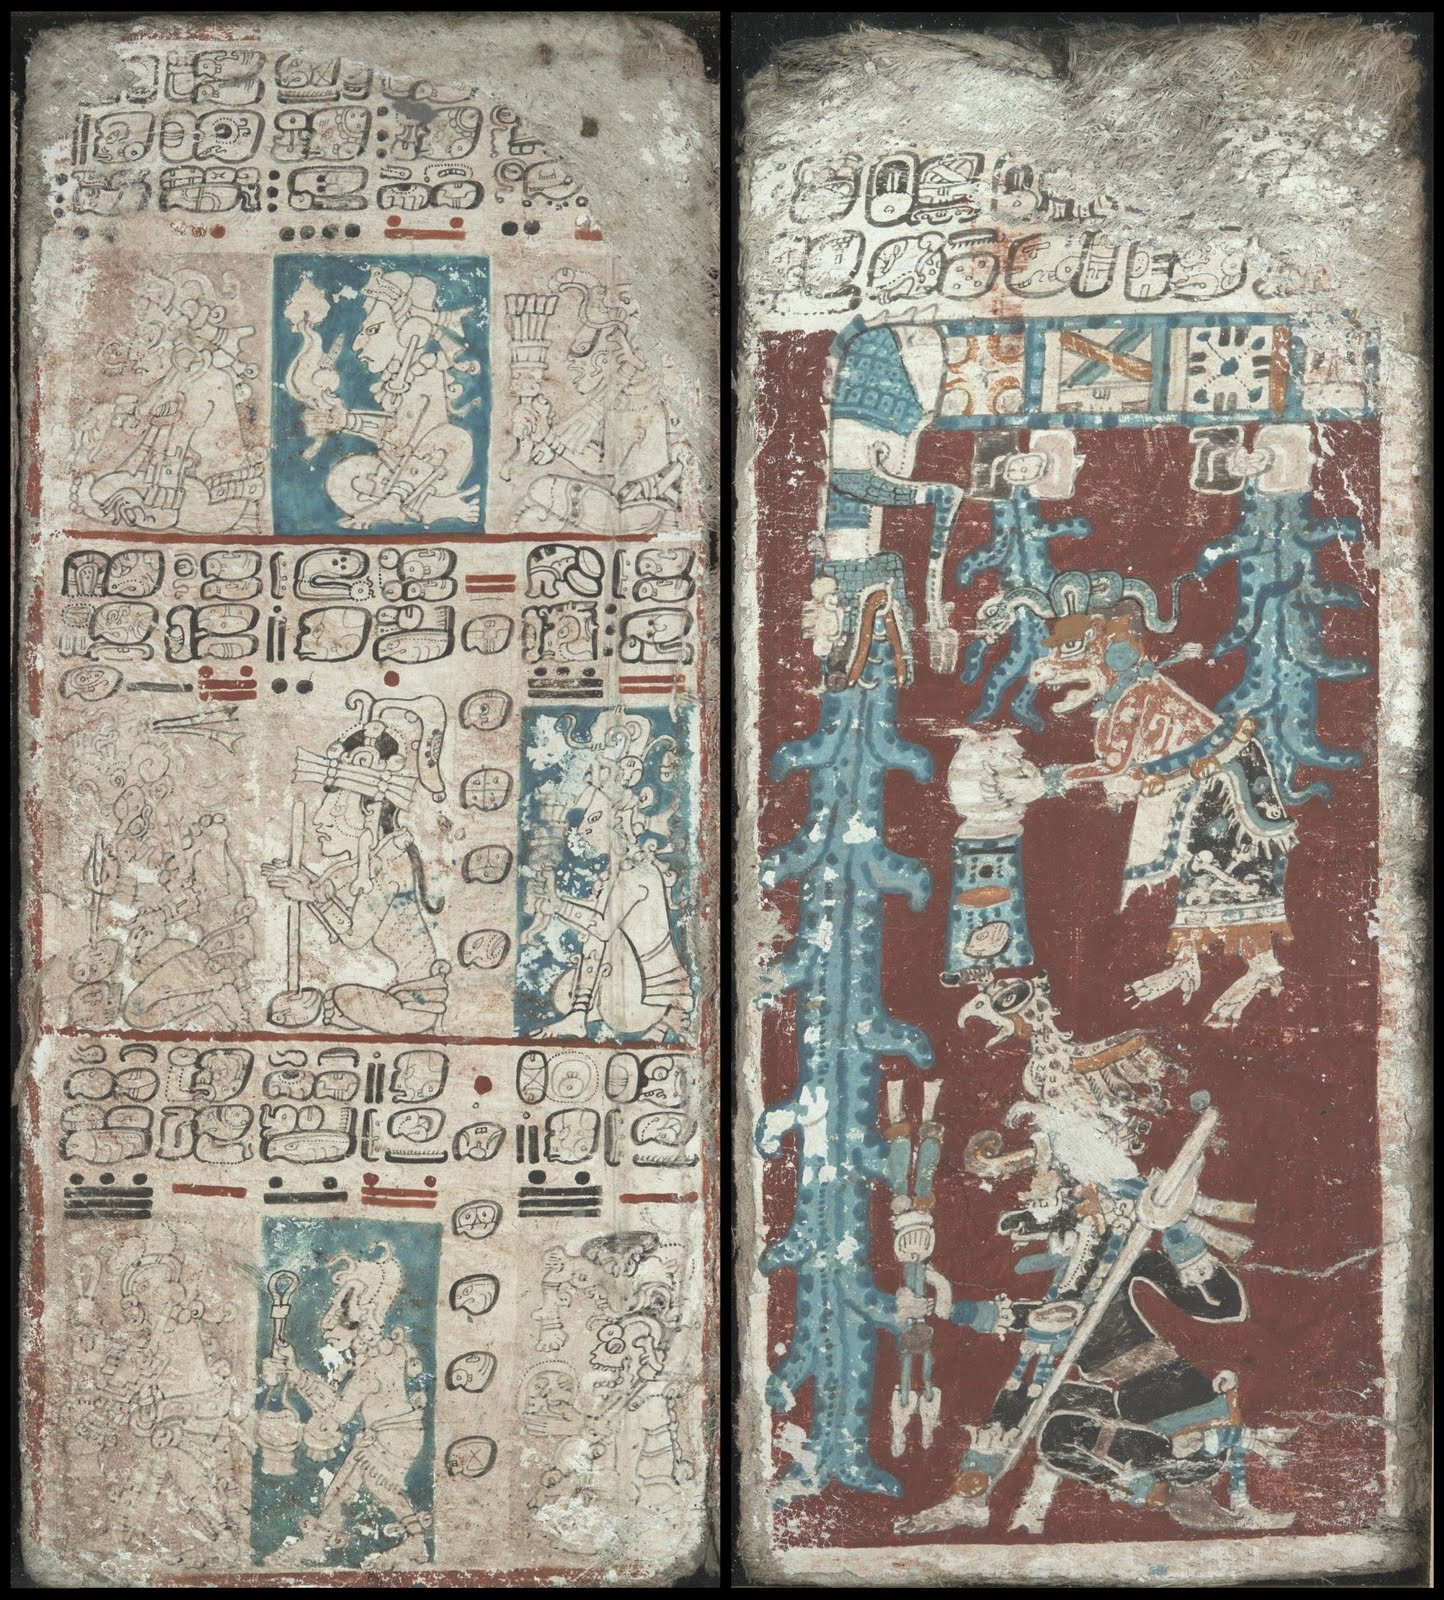 11th century Mayan codex pictographs